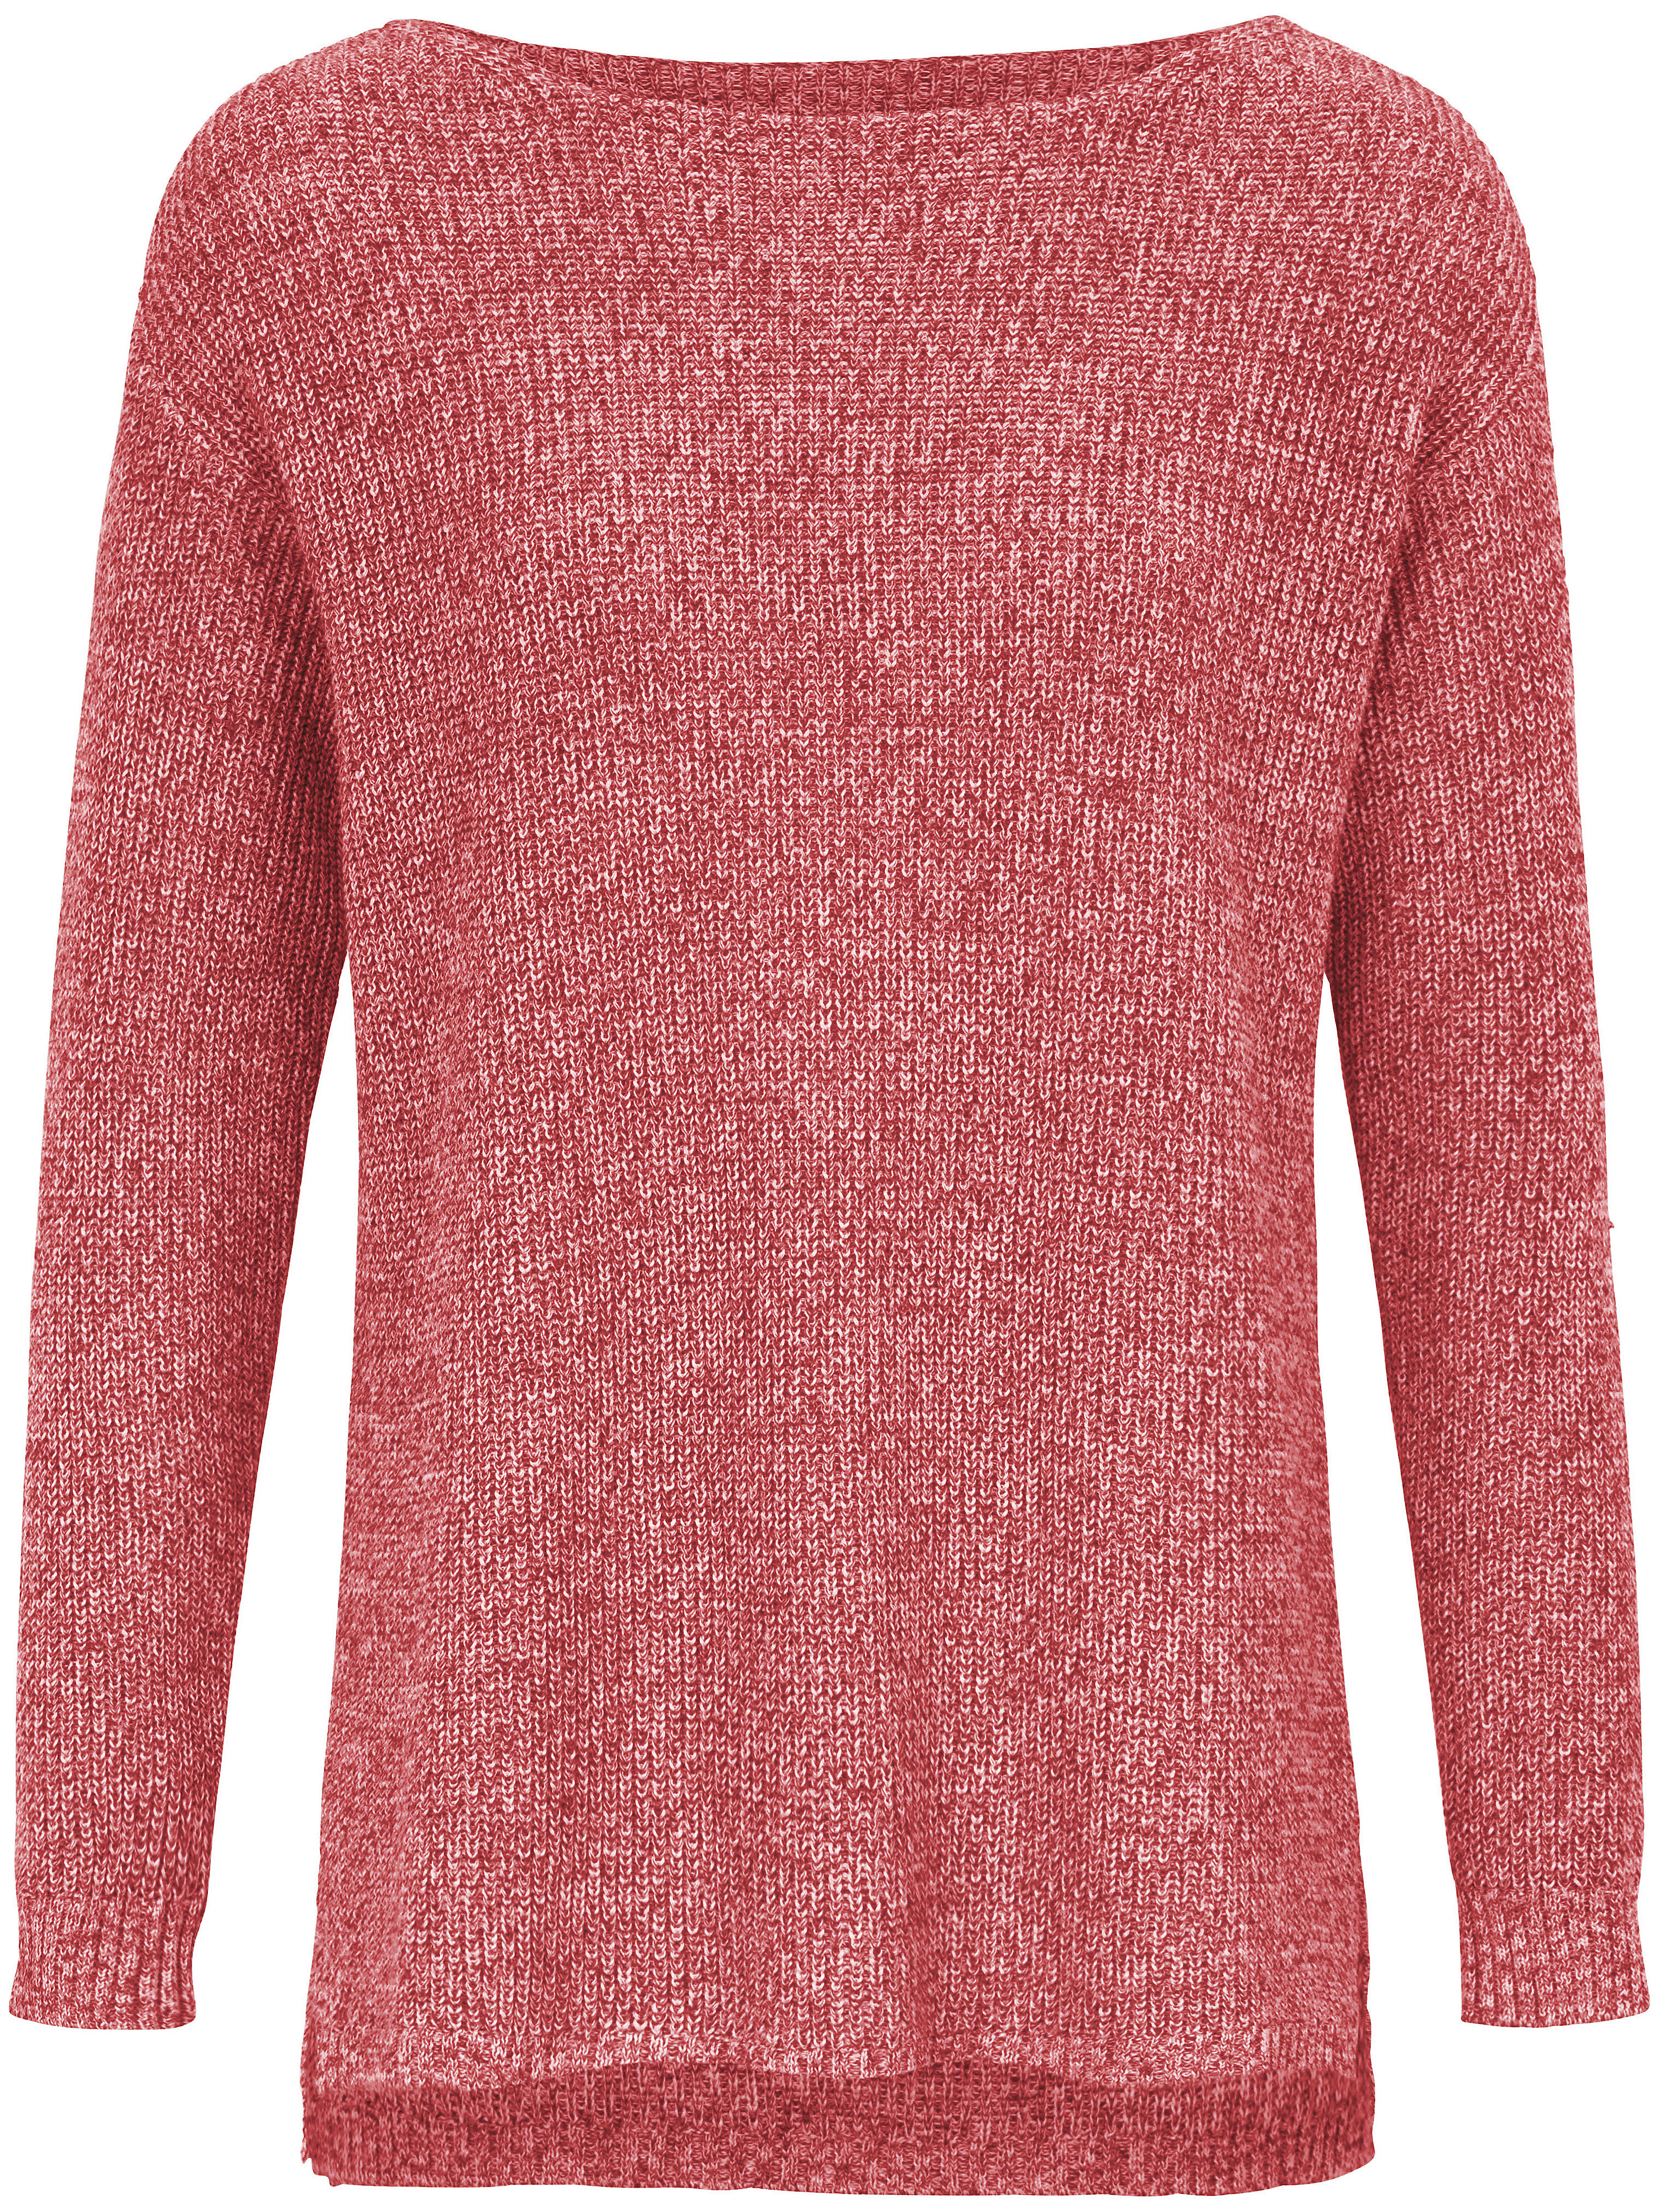 Le pull 100% coton  Peter Hahn rouge taille 52